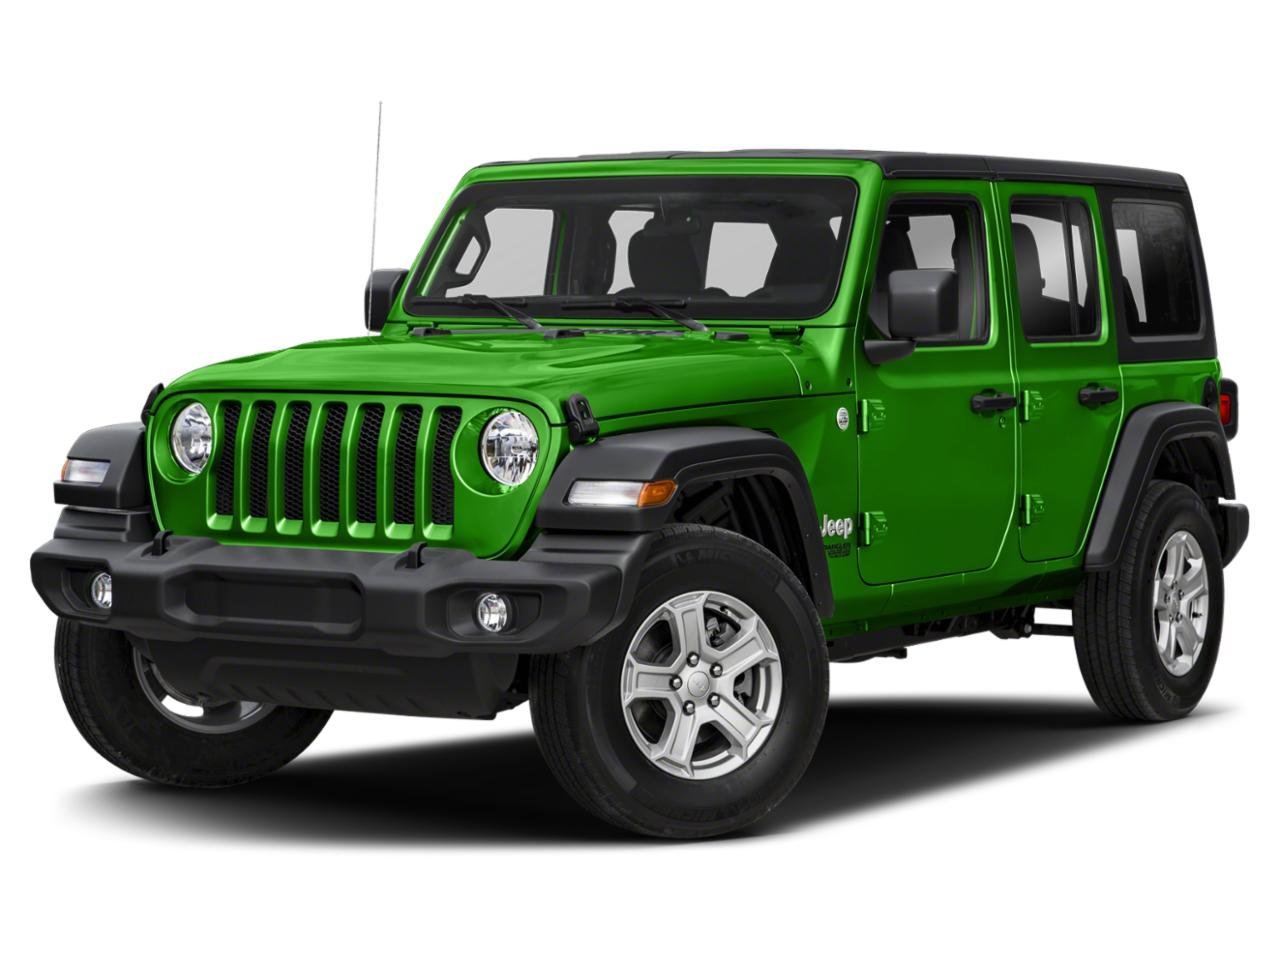 2018 Jeep Wrangler Unlimited Vehicle Photo in Emporia, VA 23847